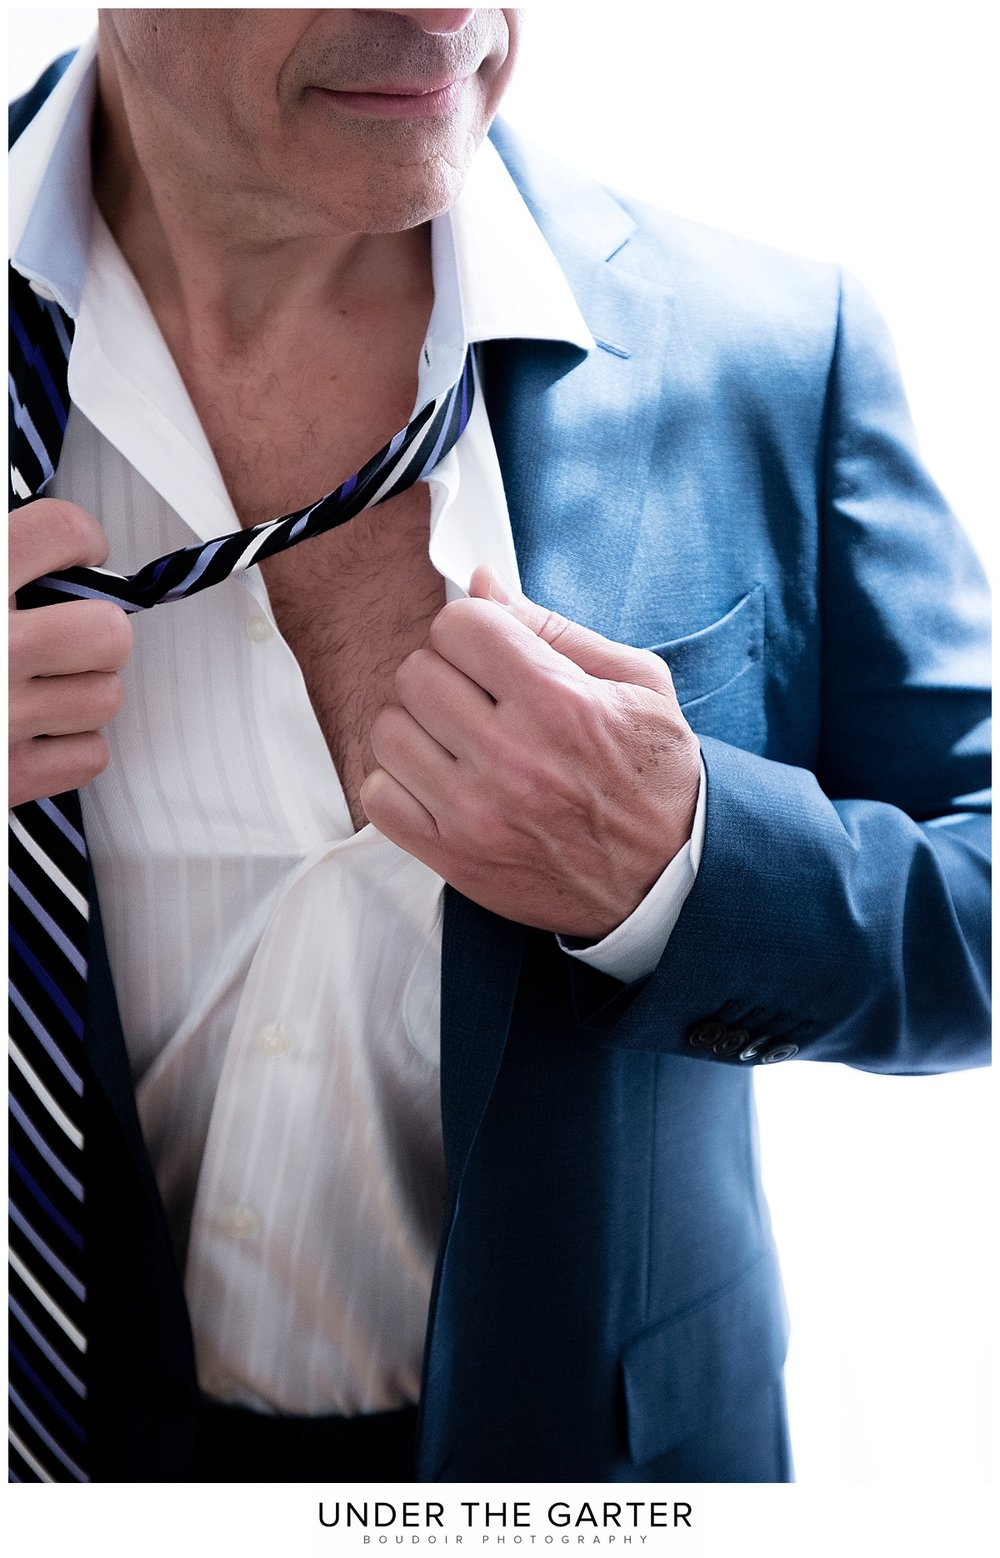 denver dudoir male boudoir photography removing tie.jpg